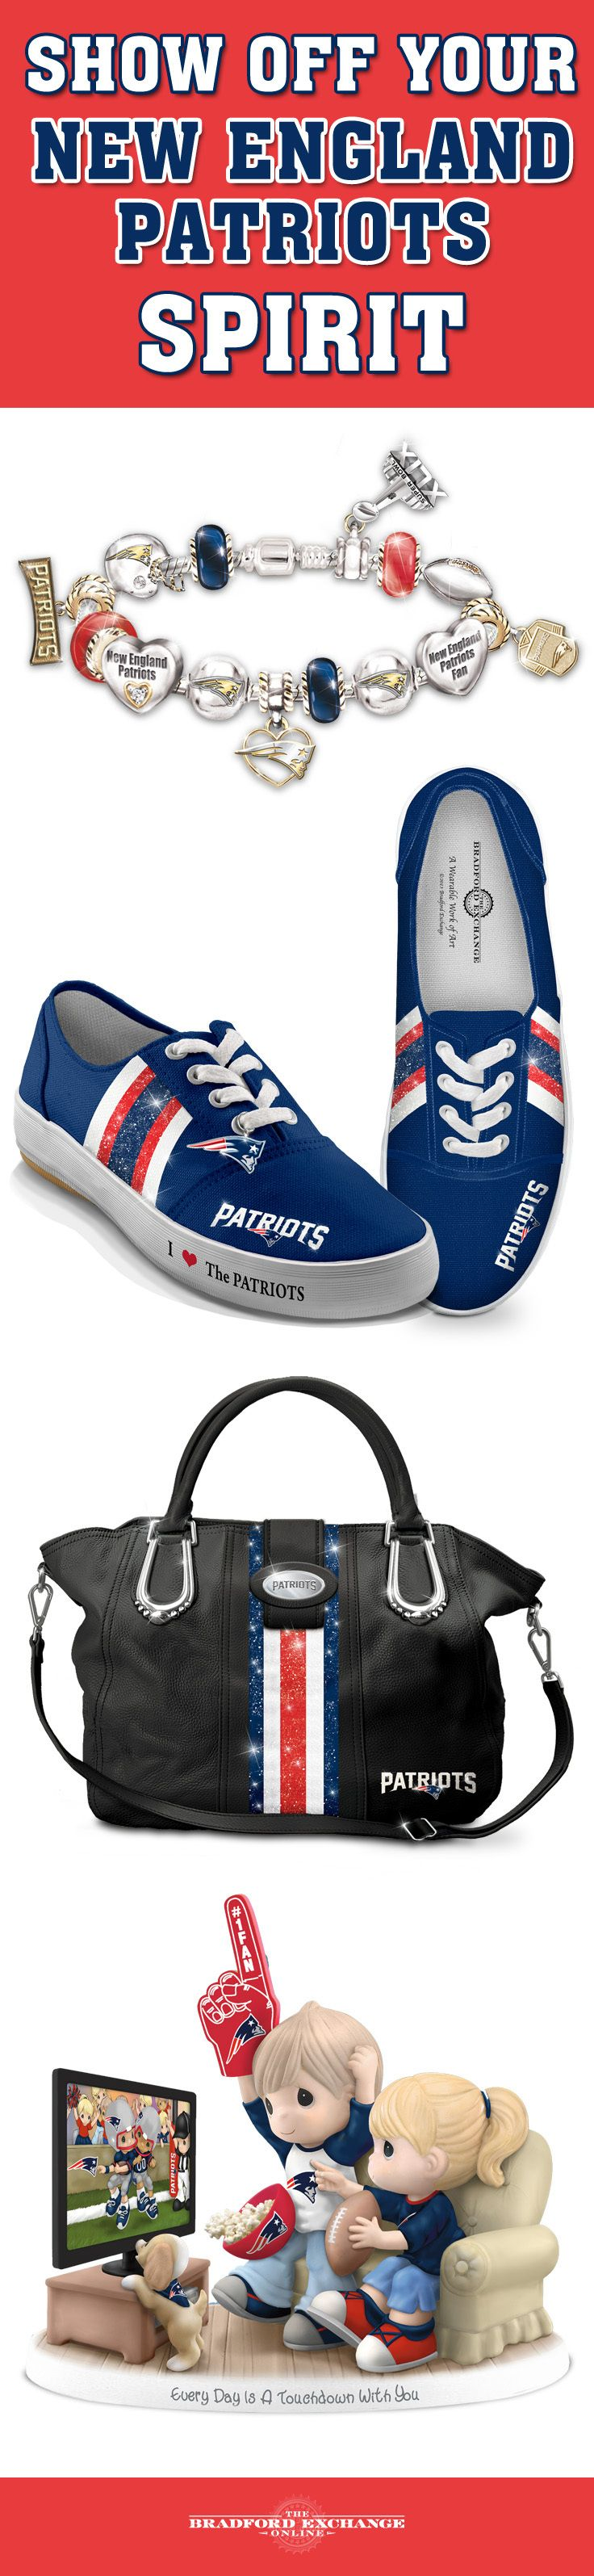 Go Pats! Put your loyalty proudly on display when you cheer on your team with NFL-licensed New England Patriots collectibles, jewelry and gifts!